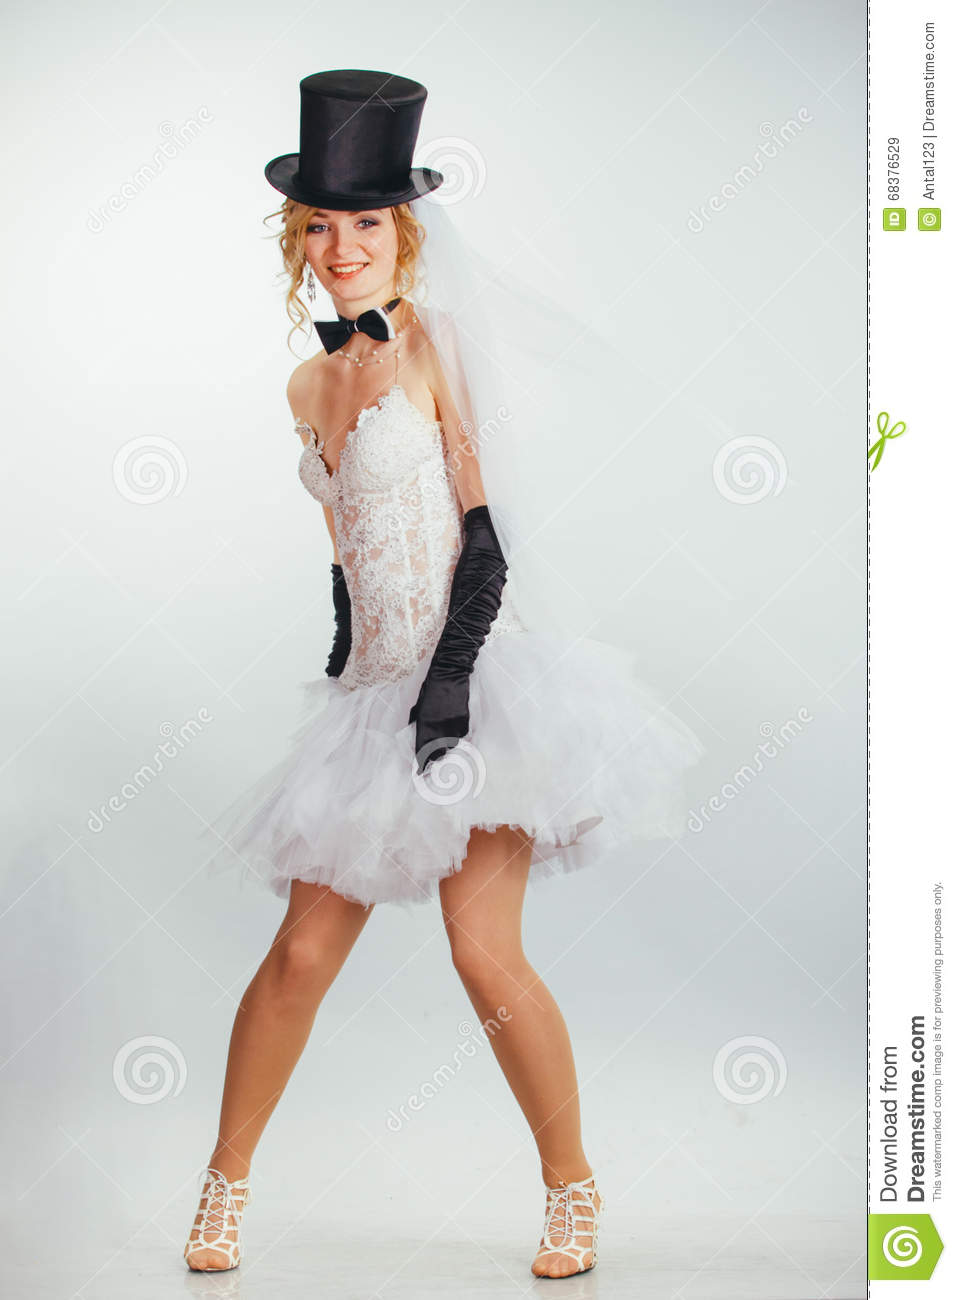 521a729d18f45 Young beautiful blonde bride in tophat with veil and stylish wedding dress  with long black gloves